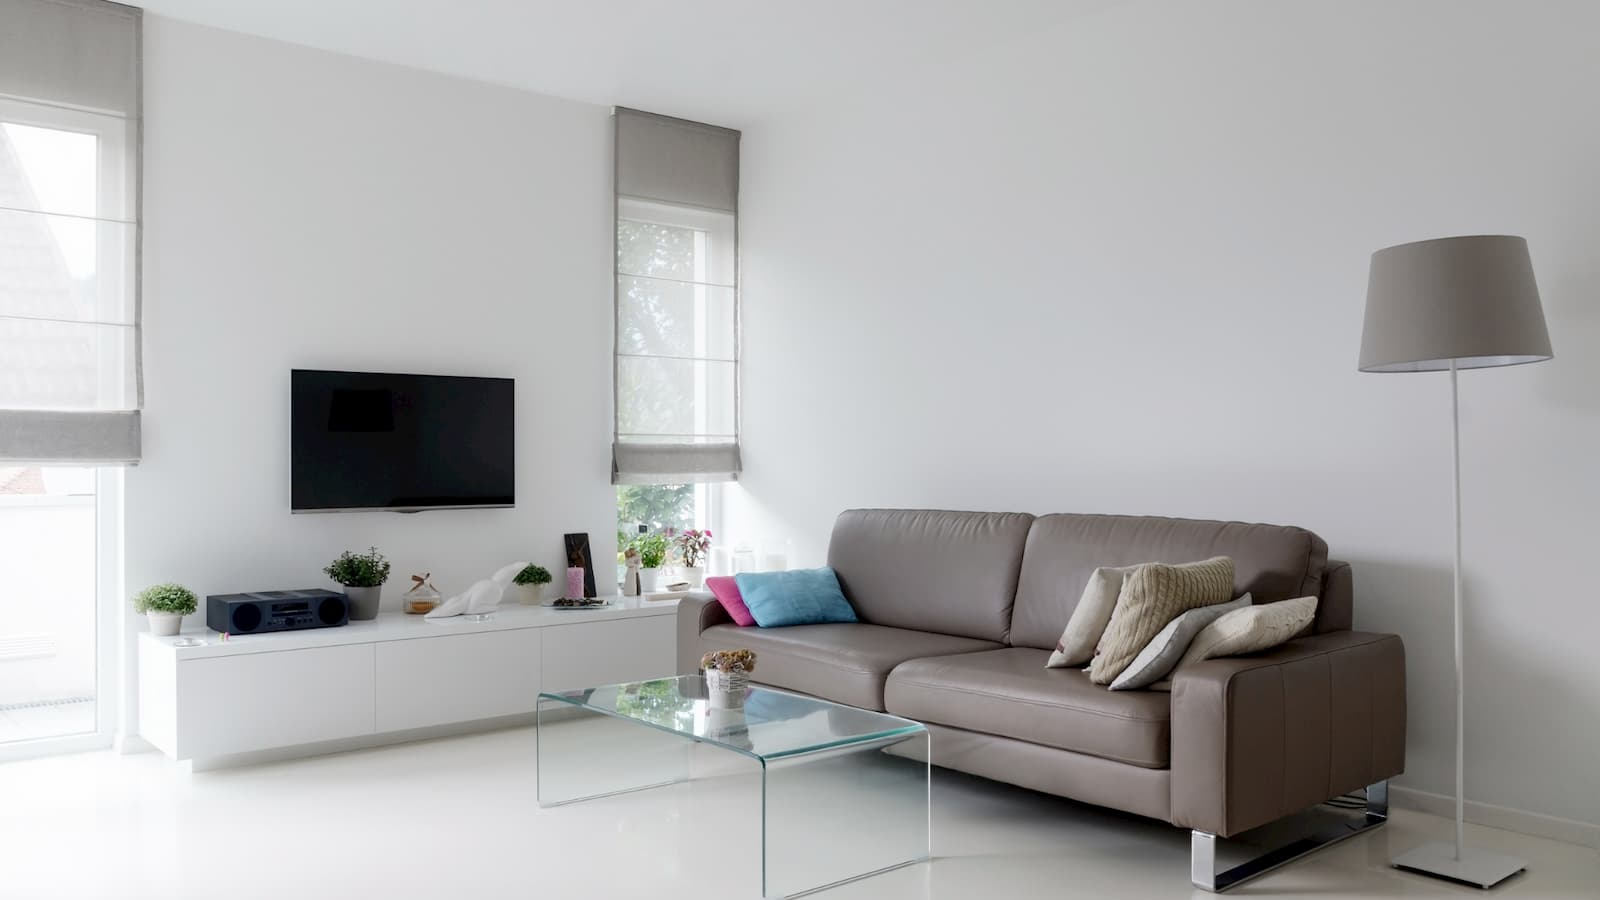 Paint tricks with taupe to make your room look bigger